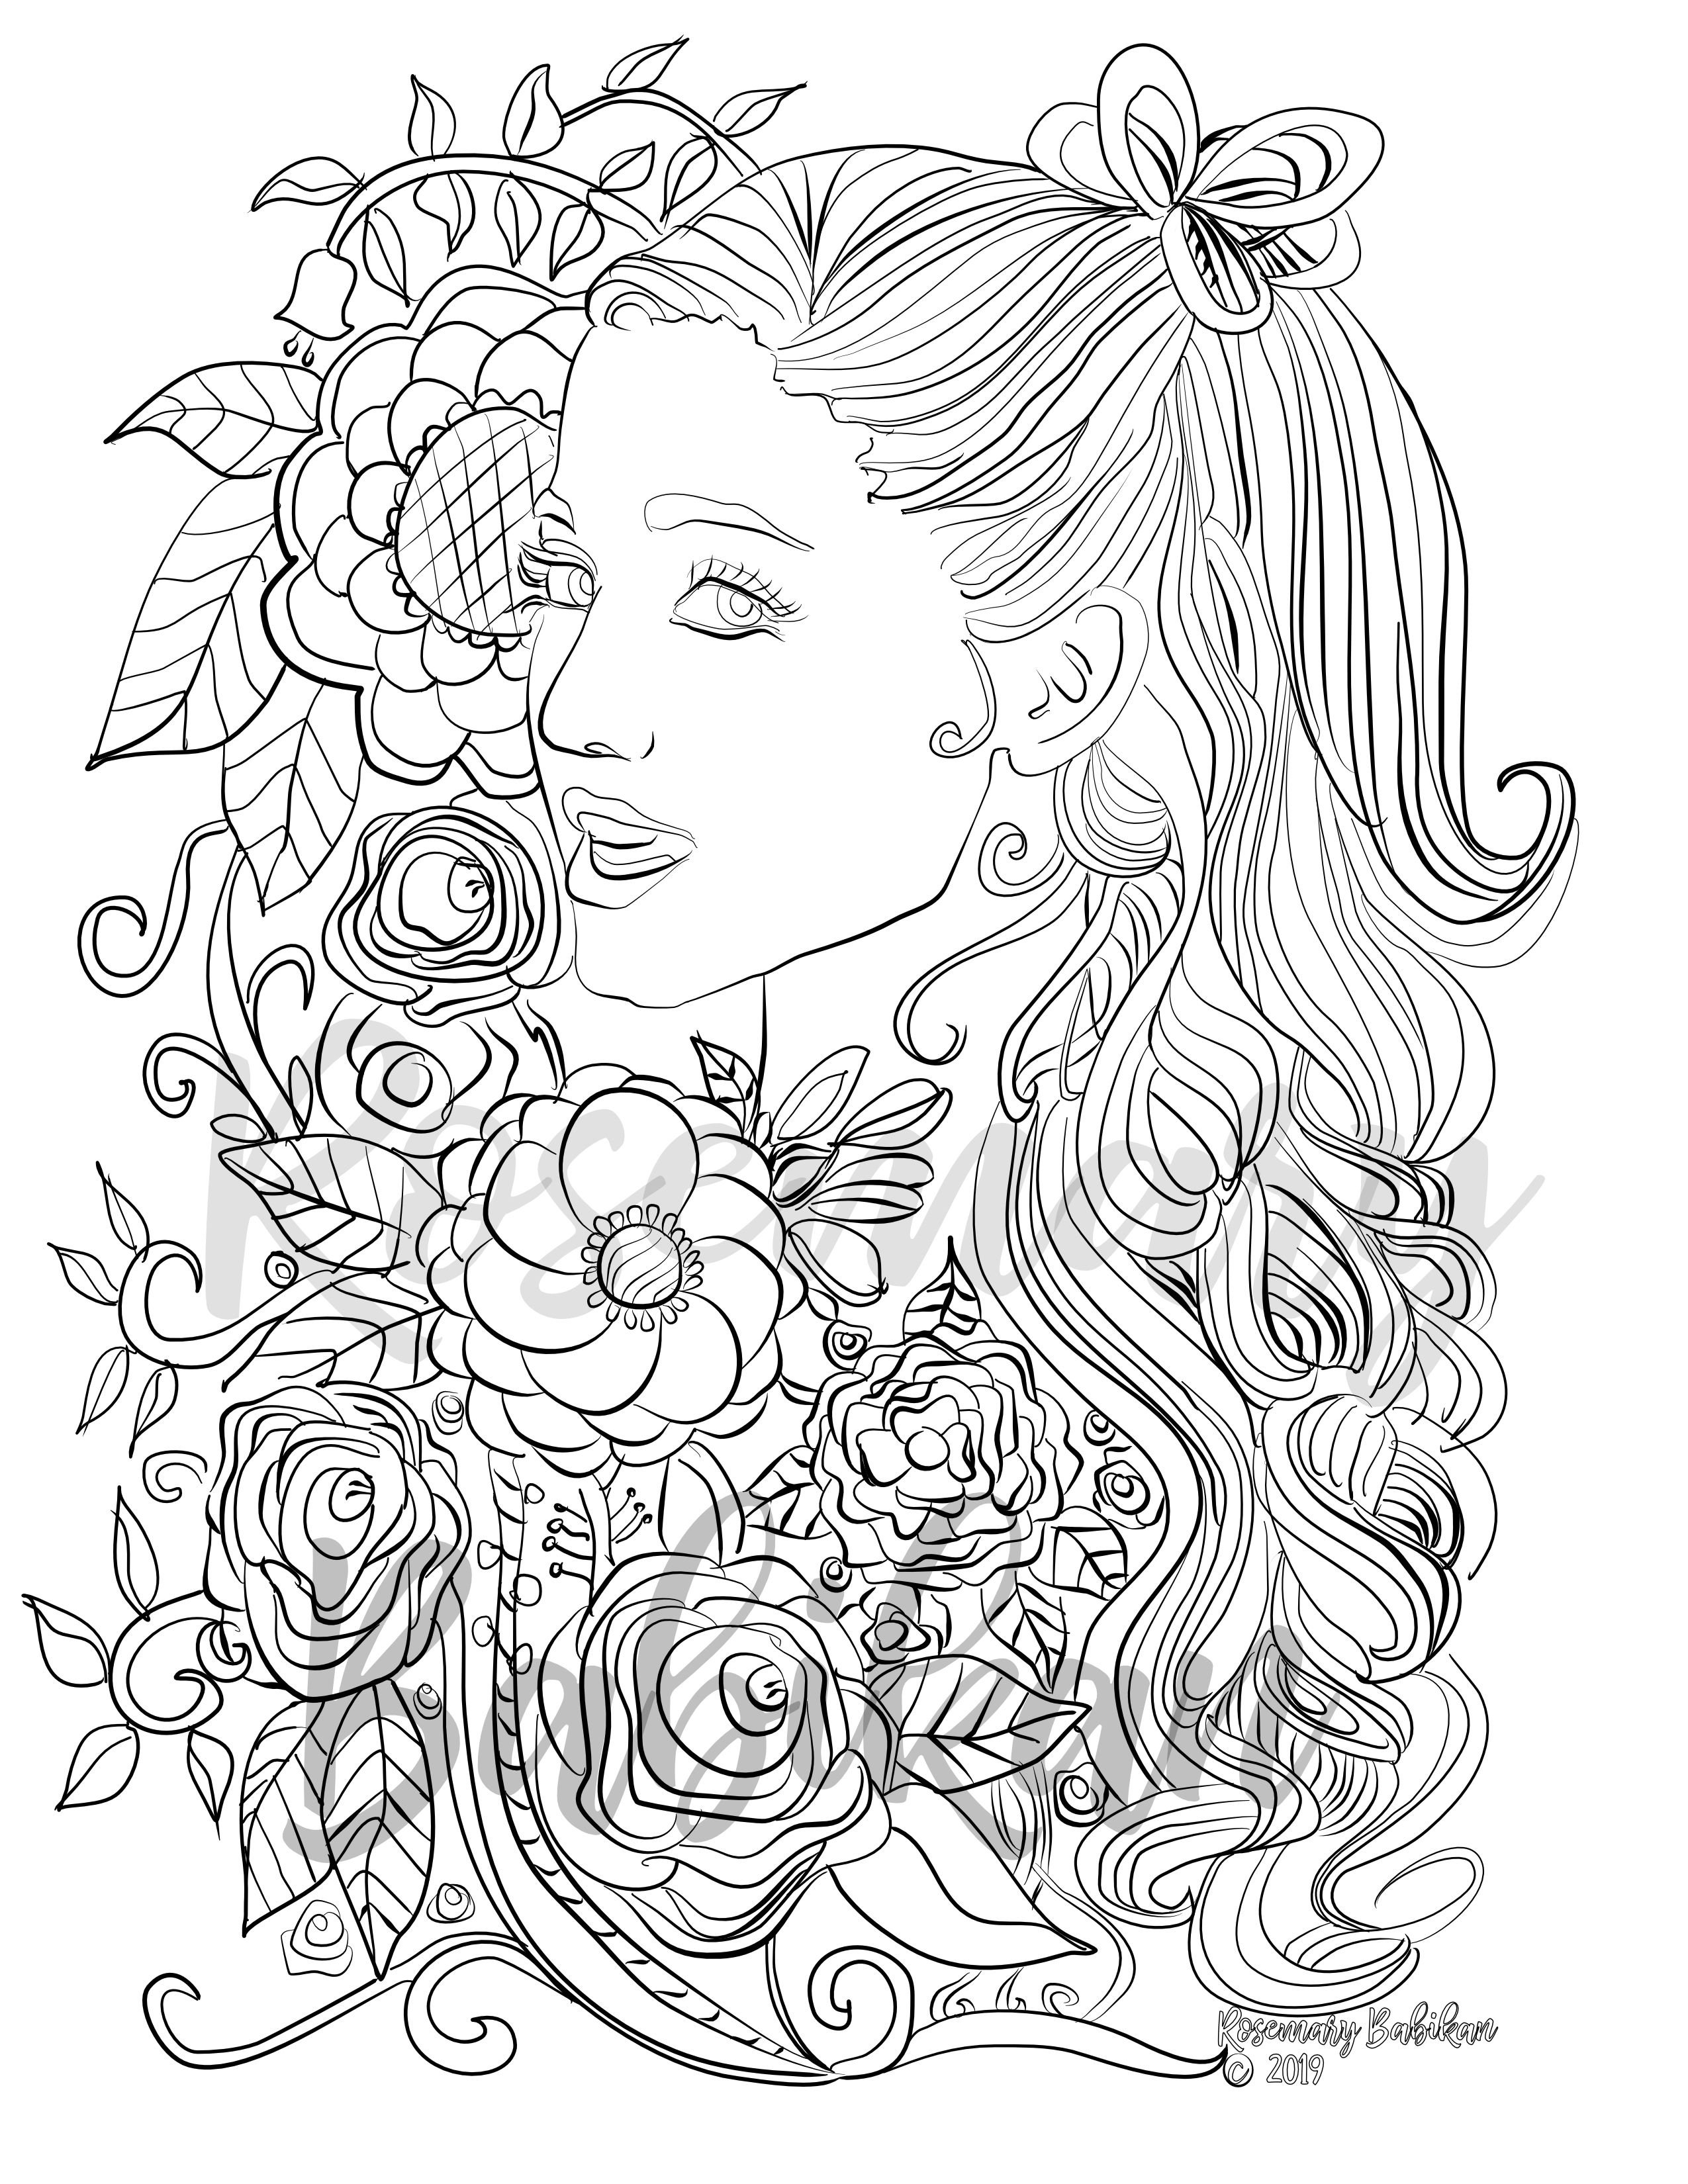 Instant Digital Download, Adult Coloring Page, Inspired by